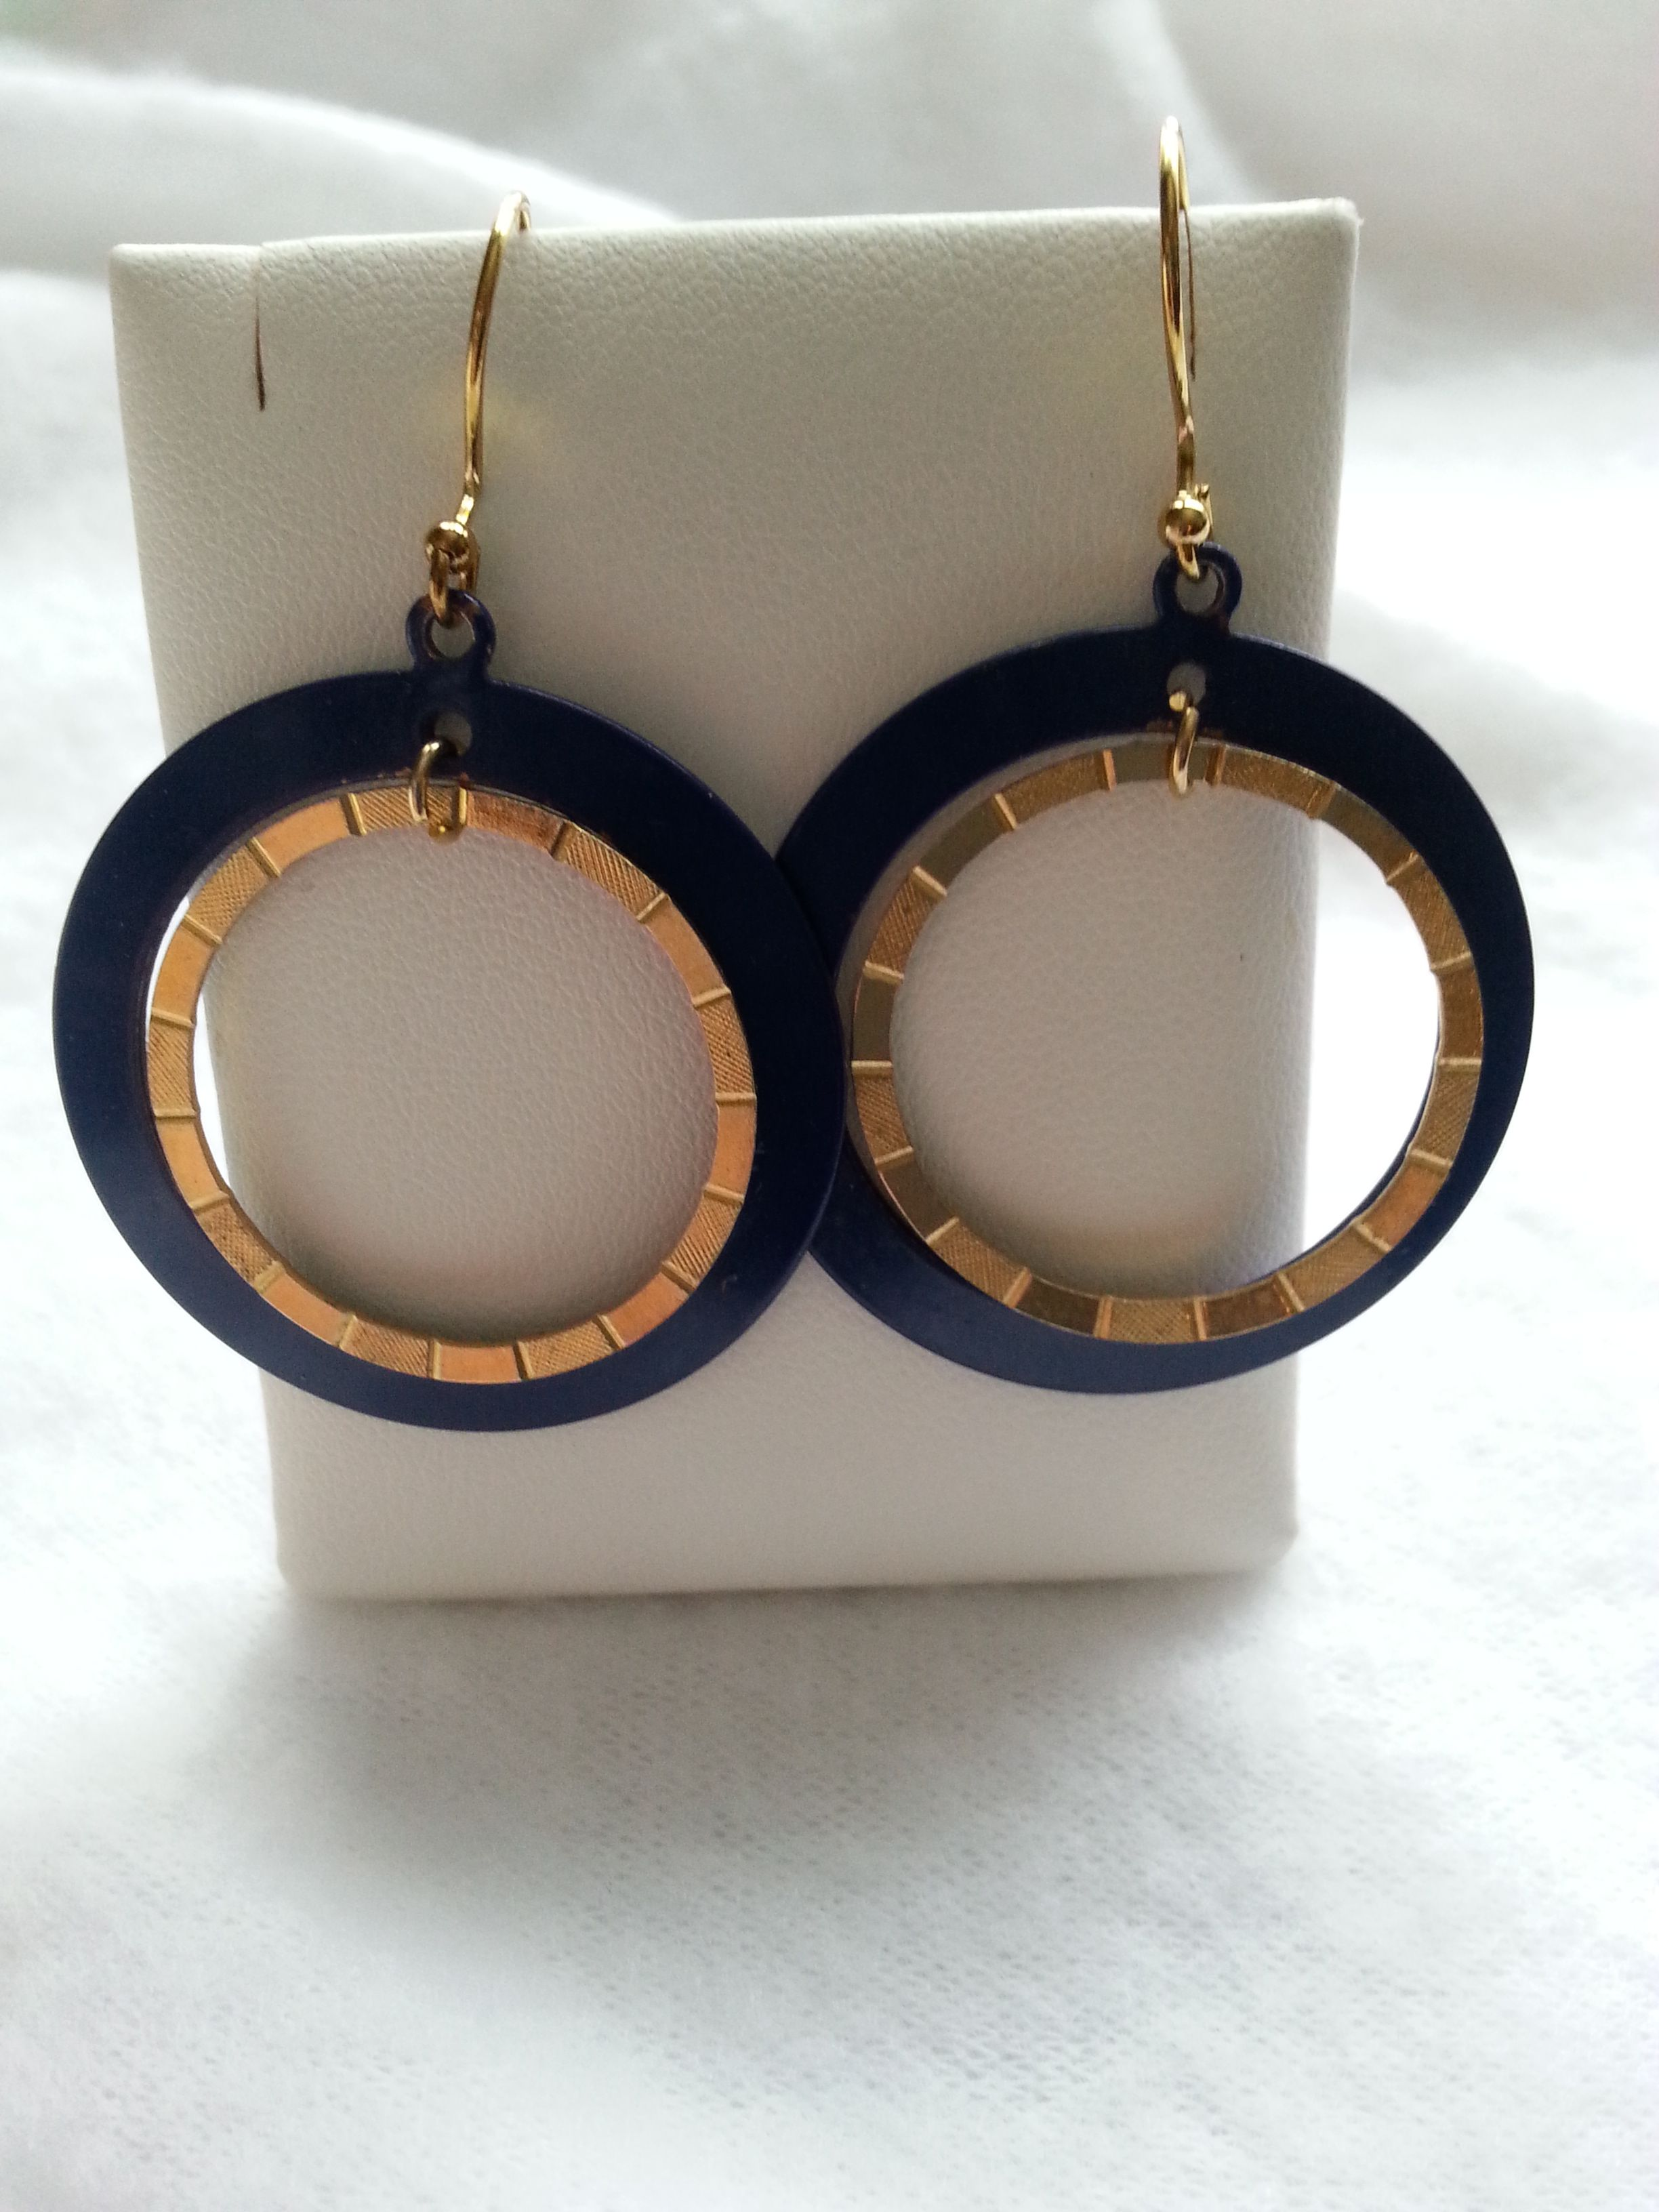 Retro Blue And Gold Metal Hoop Earrings, Women's Jewelry,  Accessories These 60